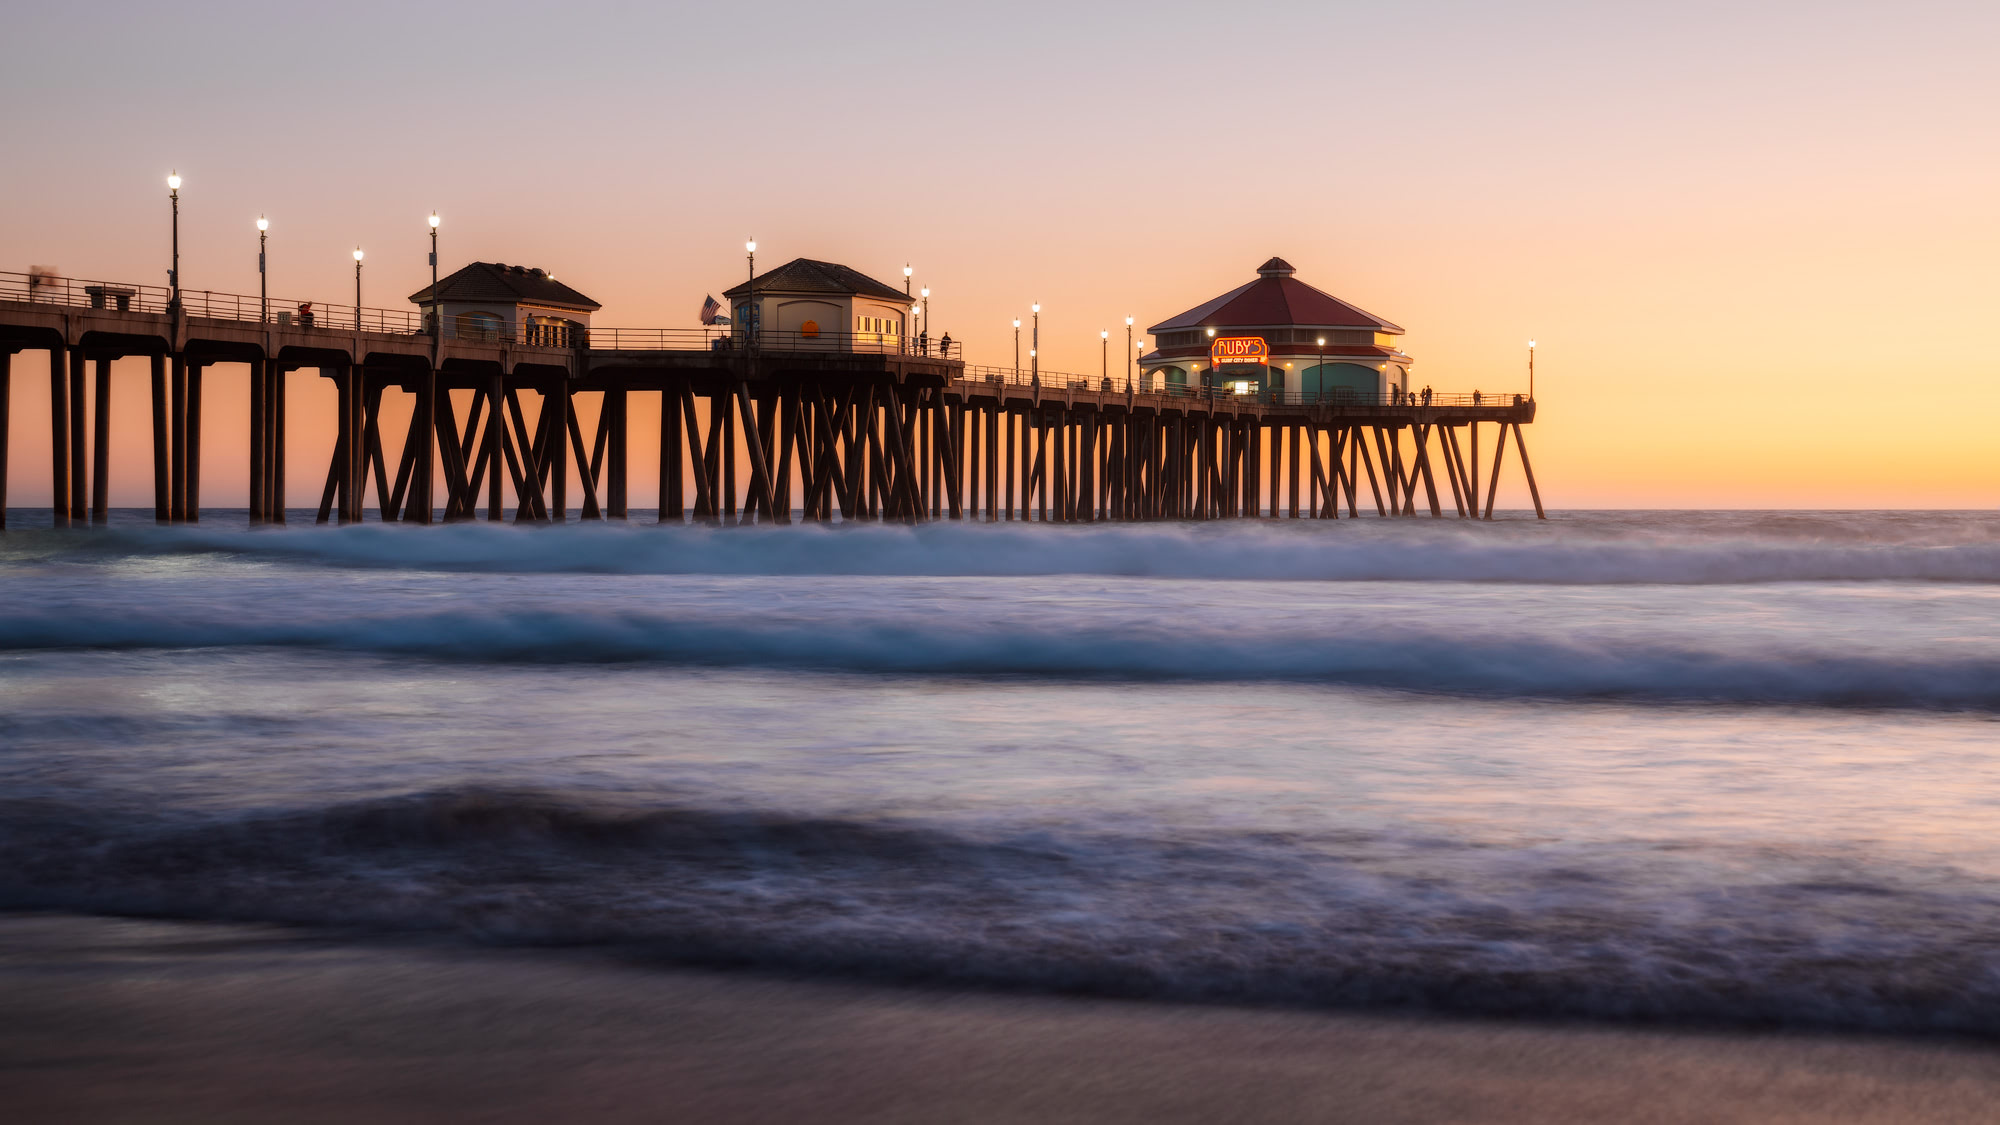 Orange County Travel Guide: Everything You Need to Know!